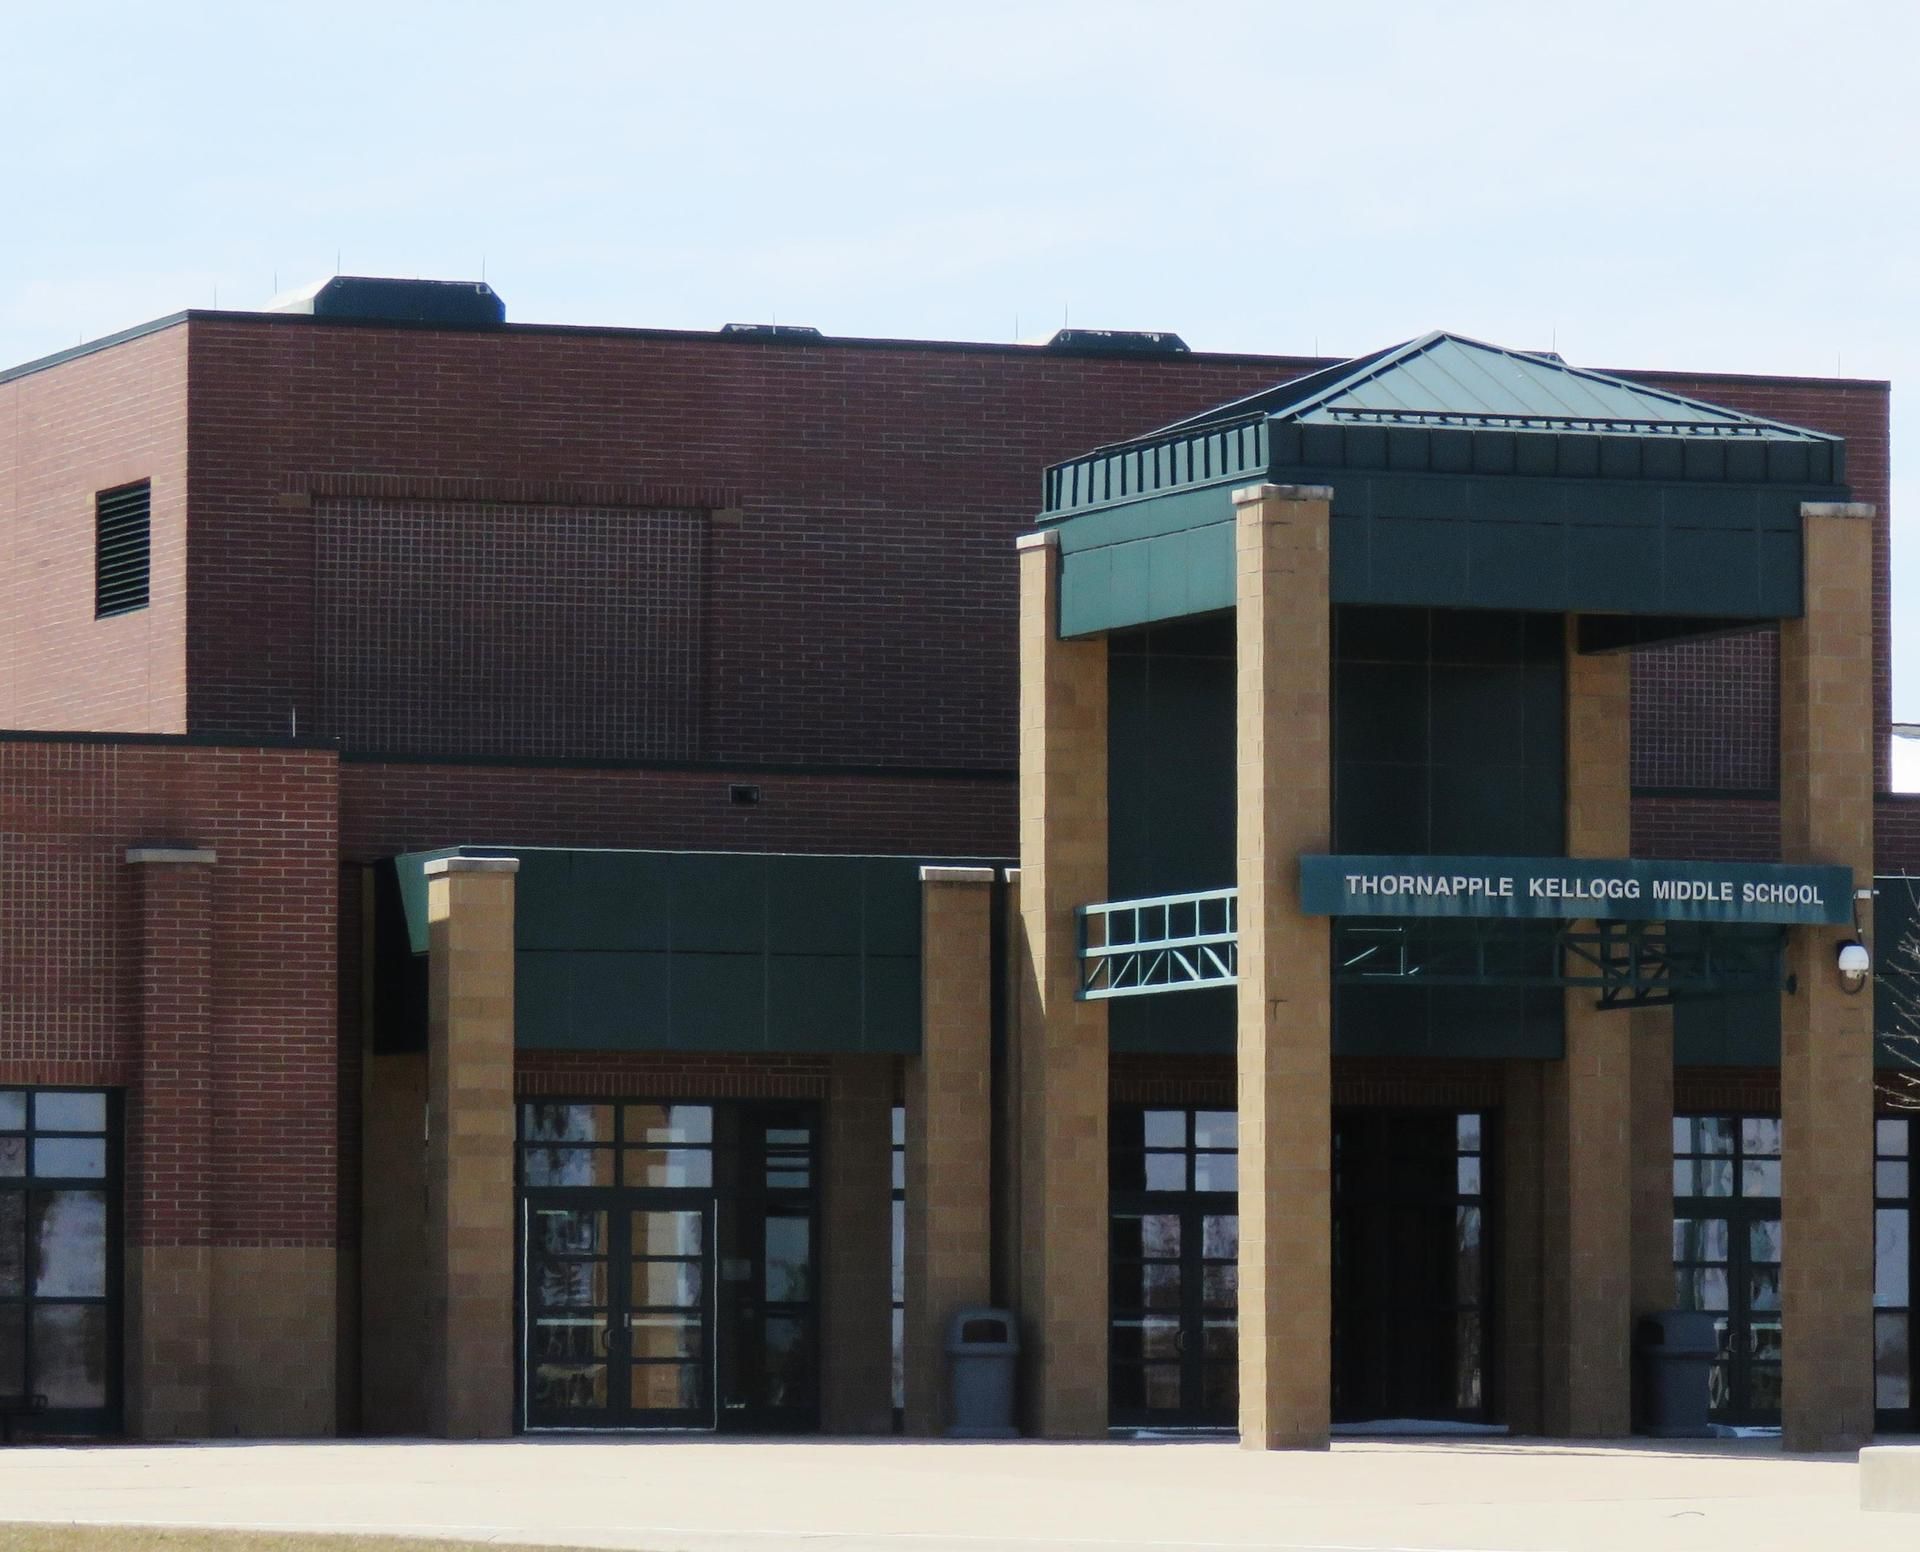 Thornapple Kellogg Middle School